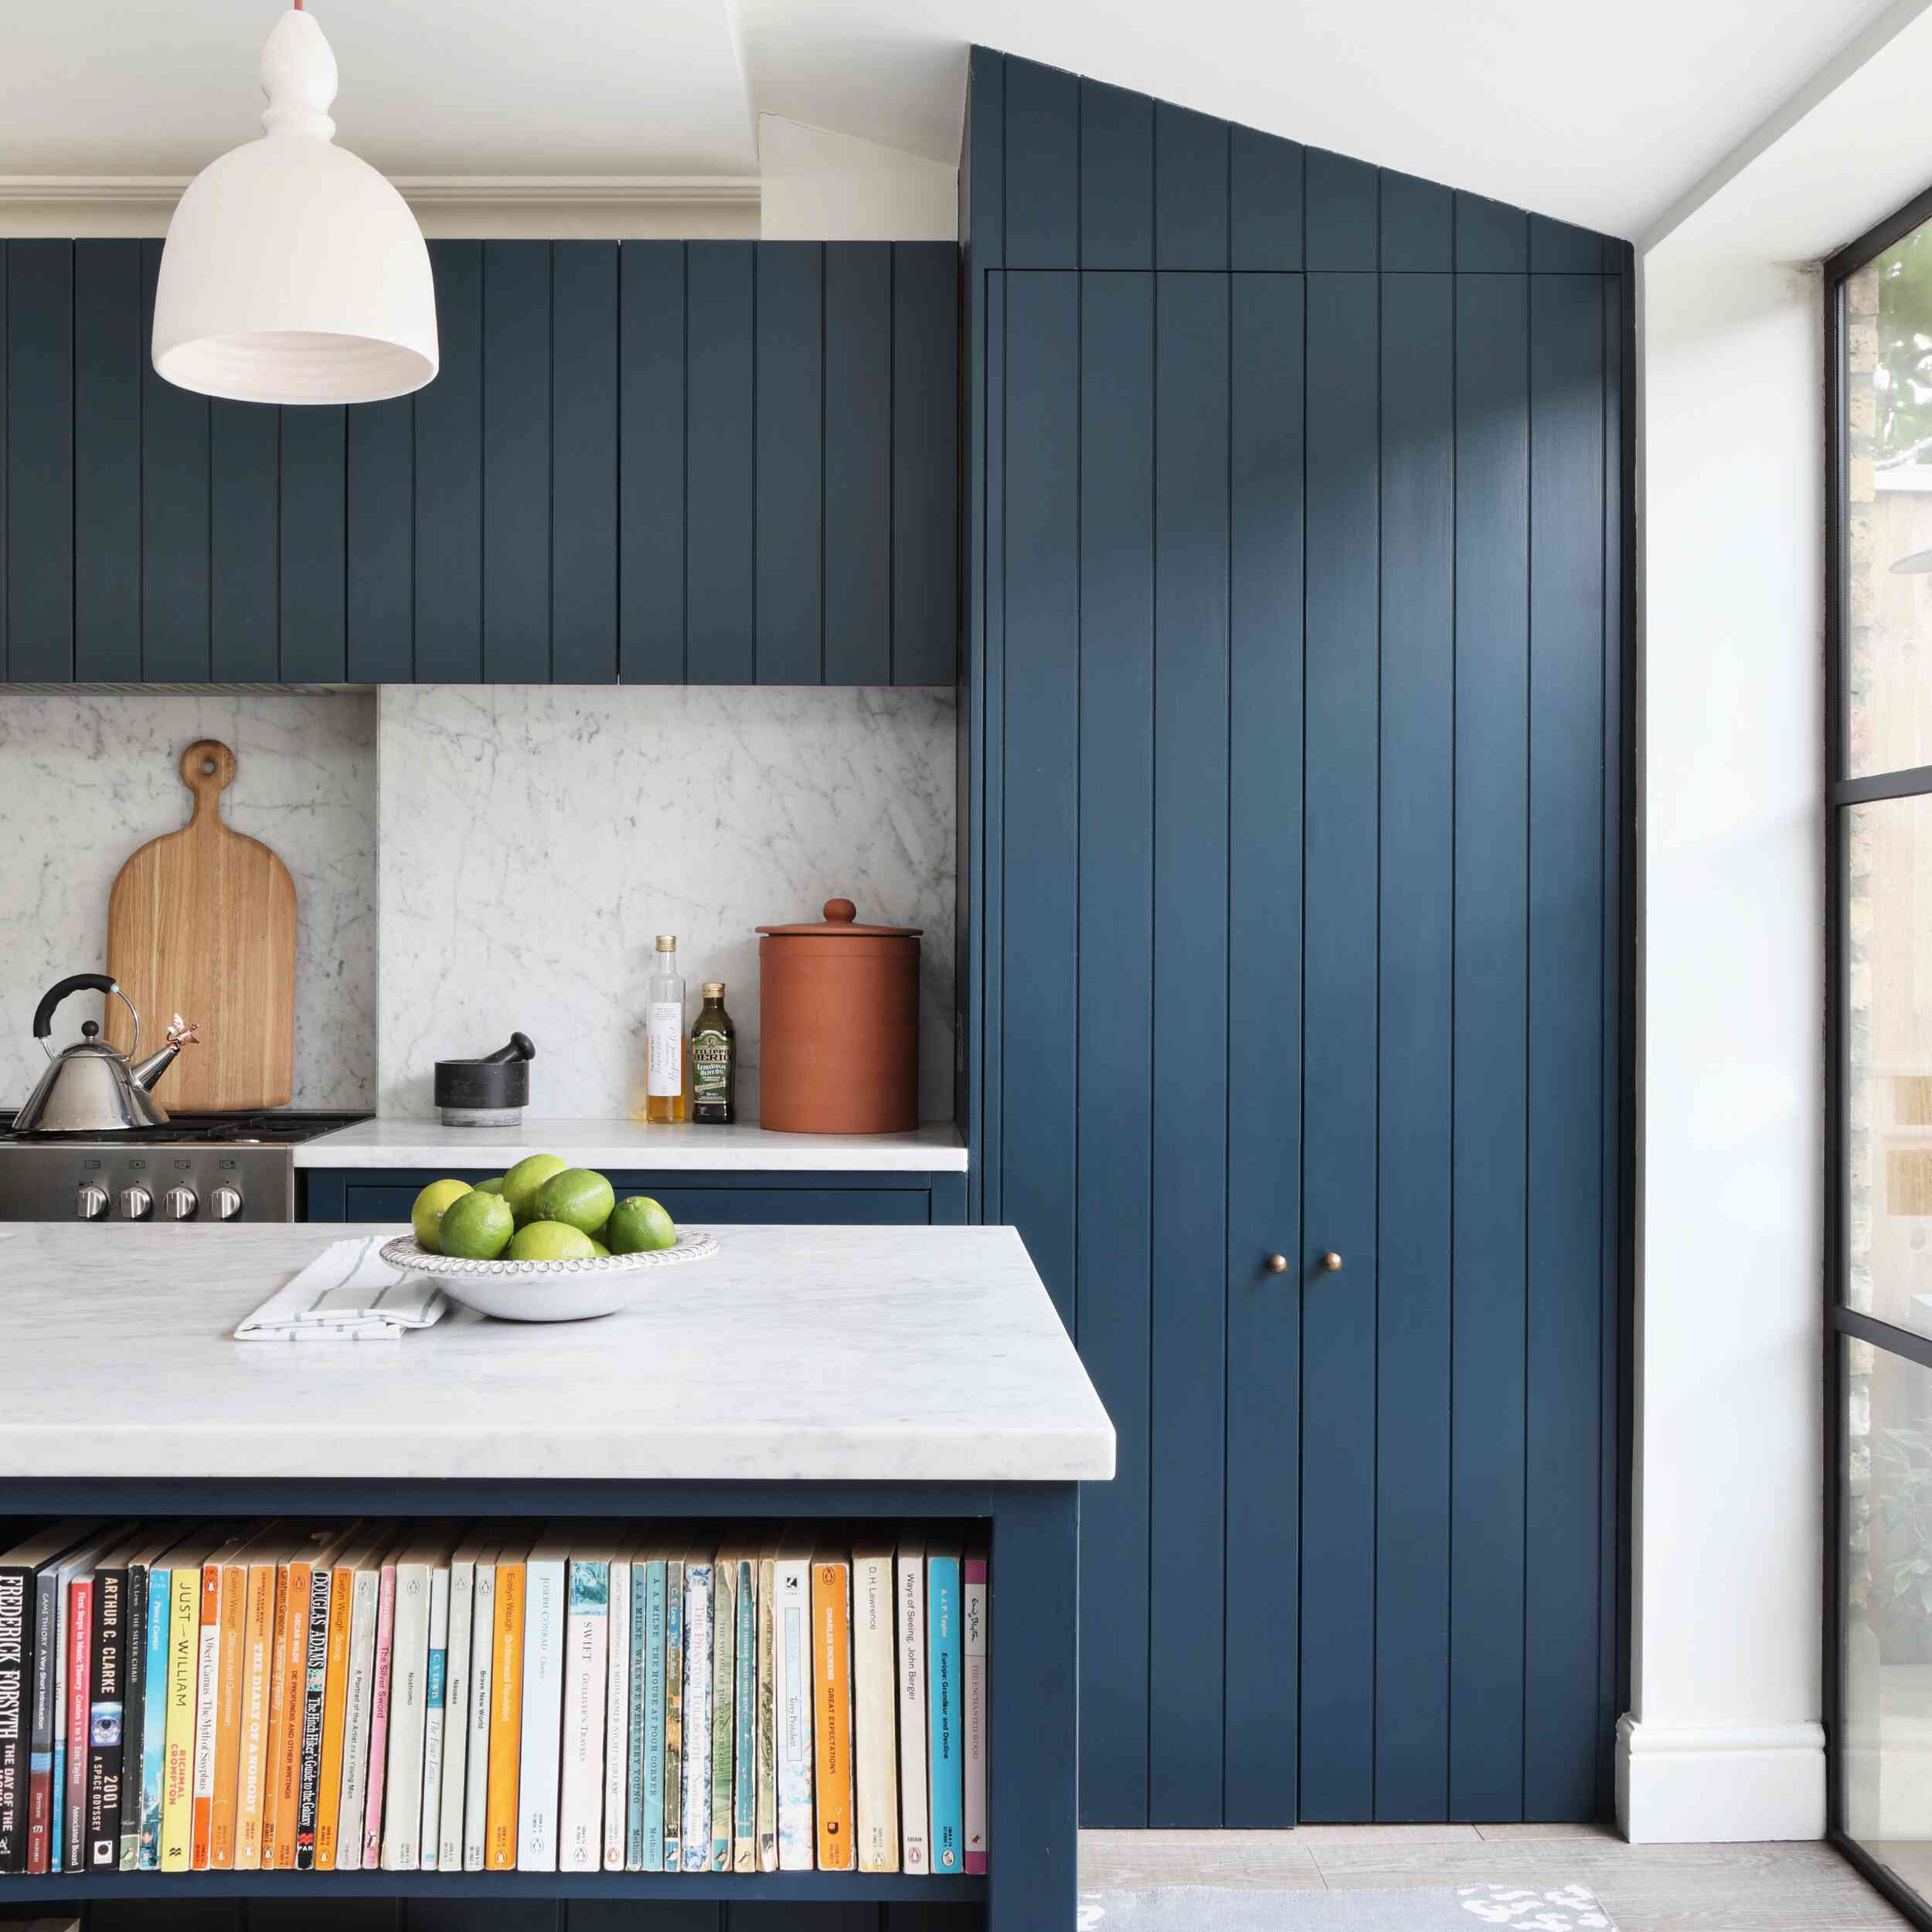 A kitchen with vibrant blue cabinets